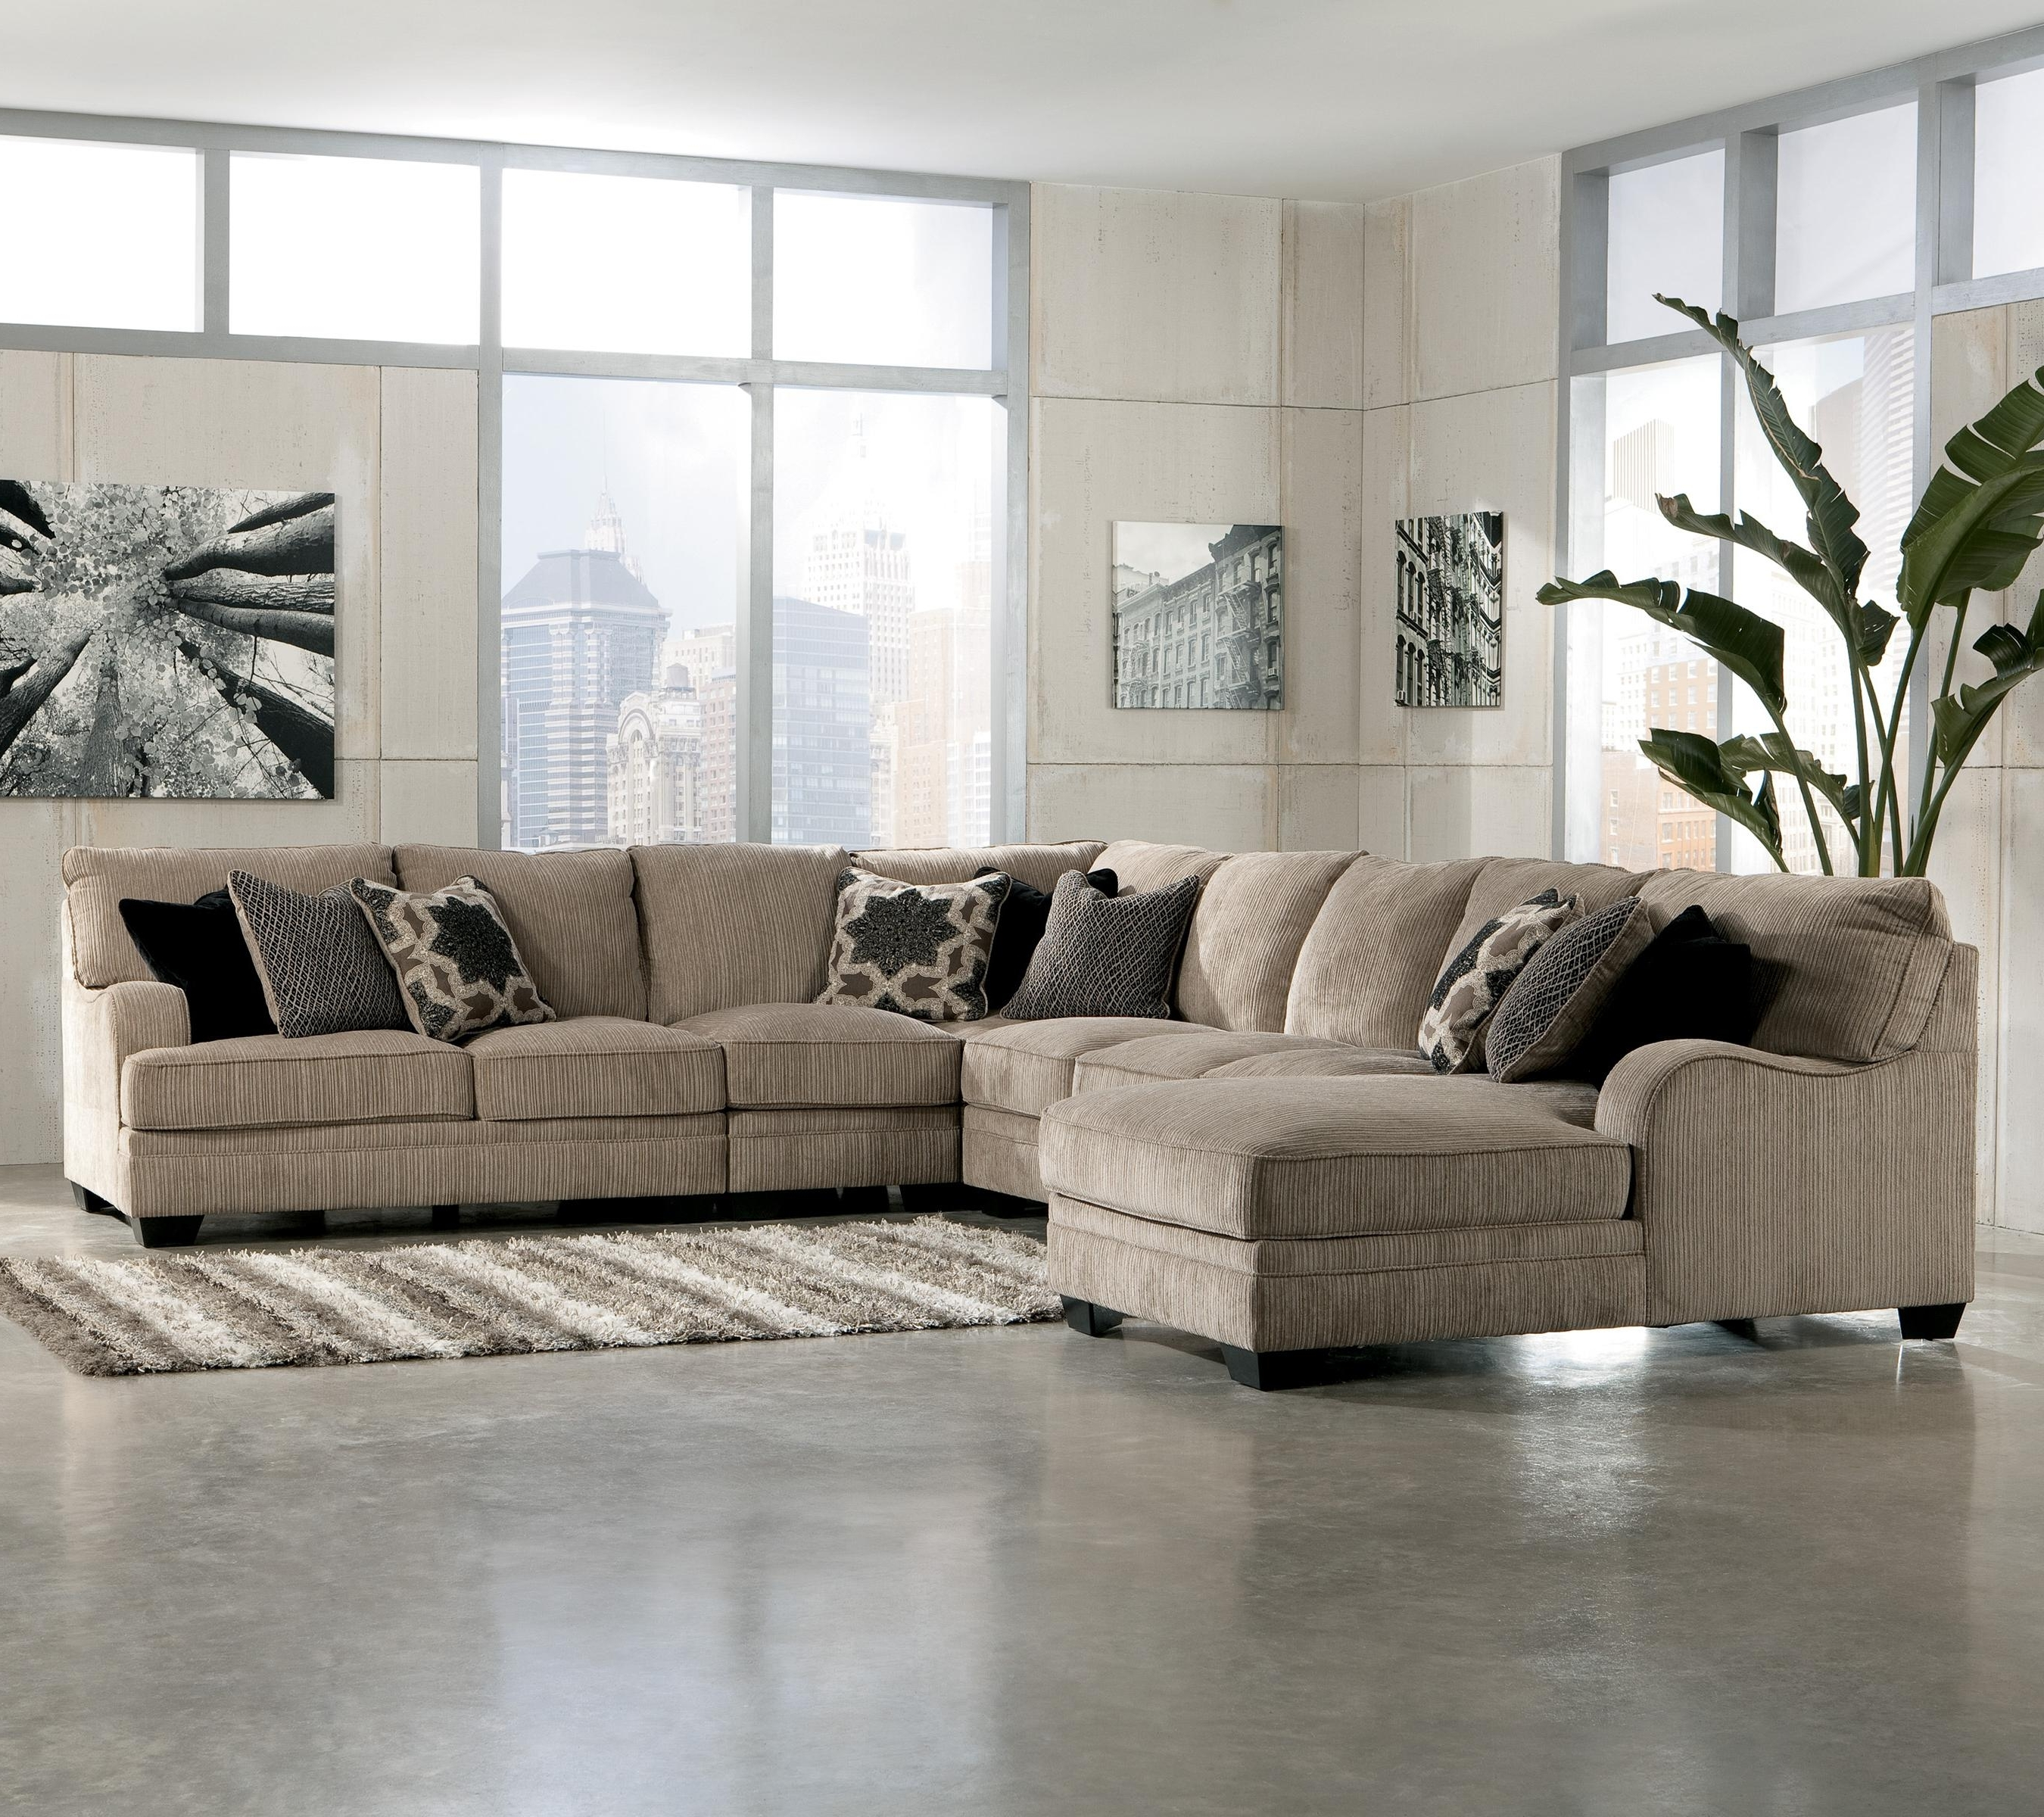 Ashley Furniture Chaise Lounge Chairs Within Recent Living Room Sectional: Katisha 4 Piece Sectionalashley (View 7 of 15)